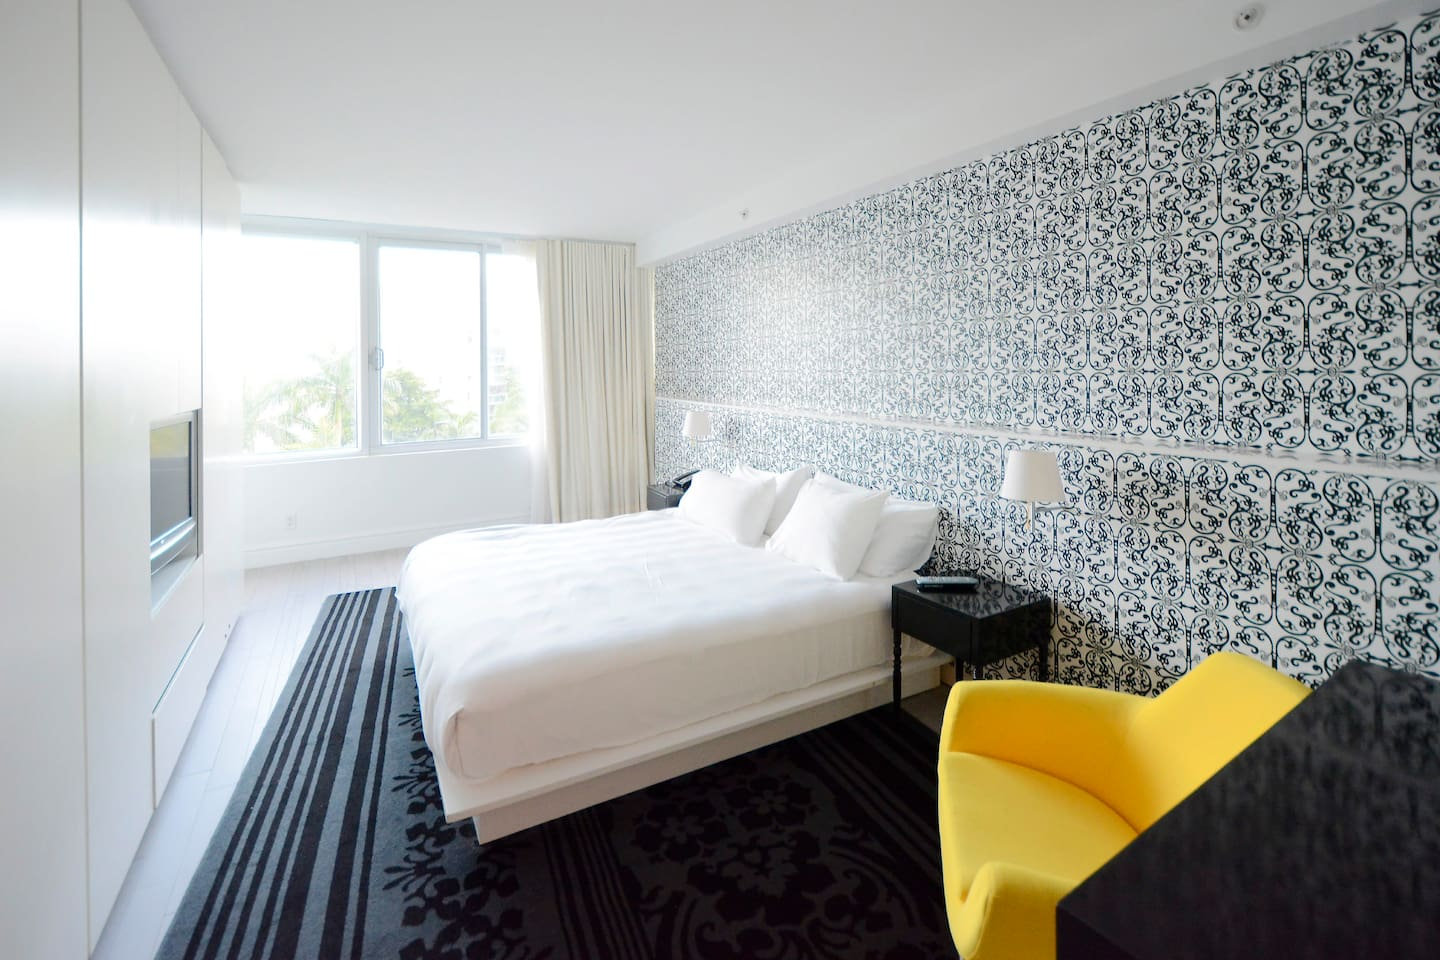 2 beds sofabed 5 star hotel south beach boutique hotels for